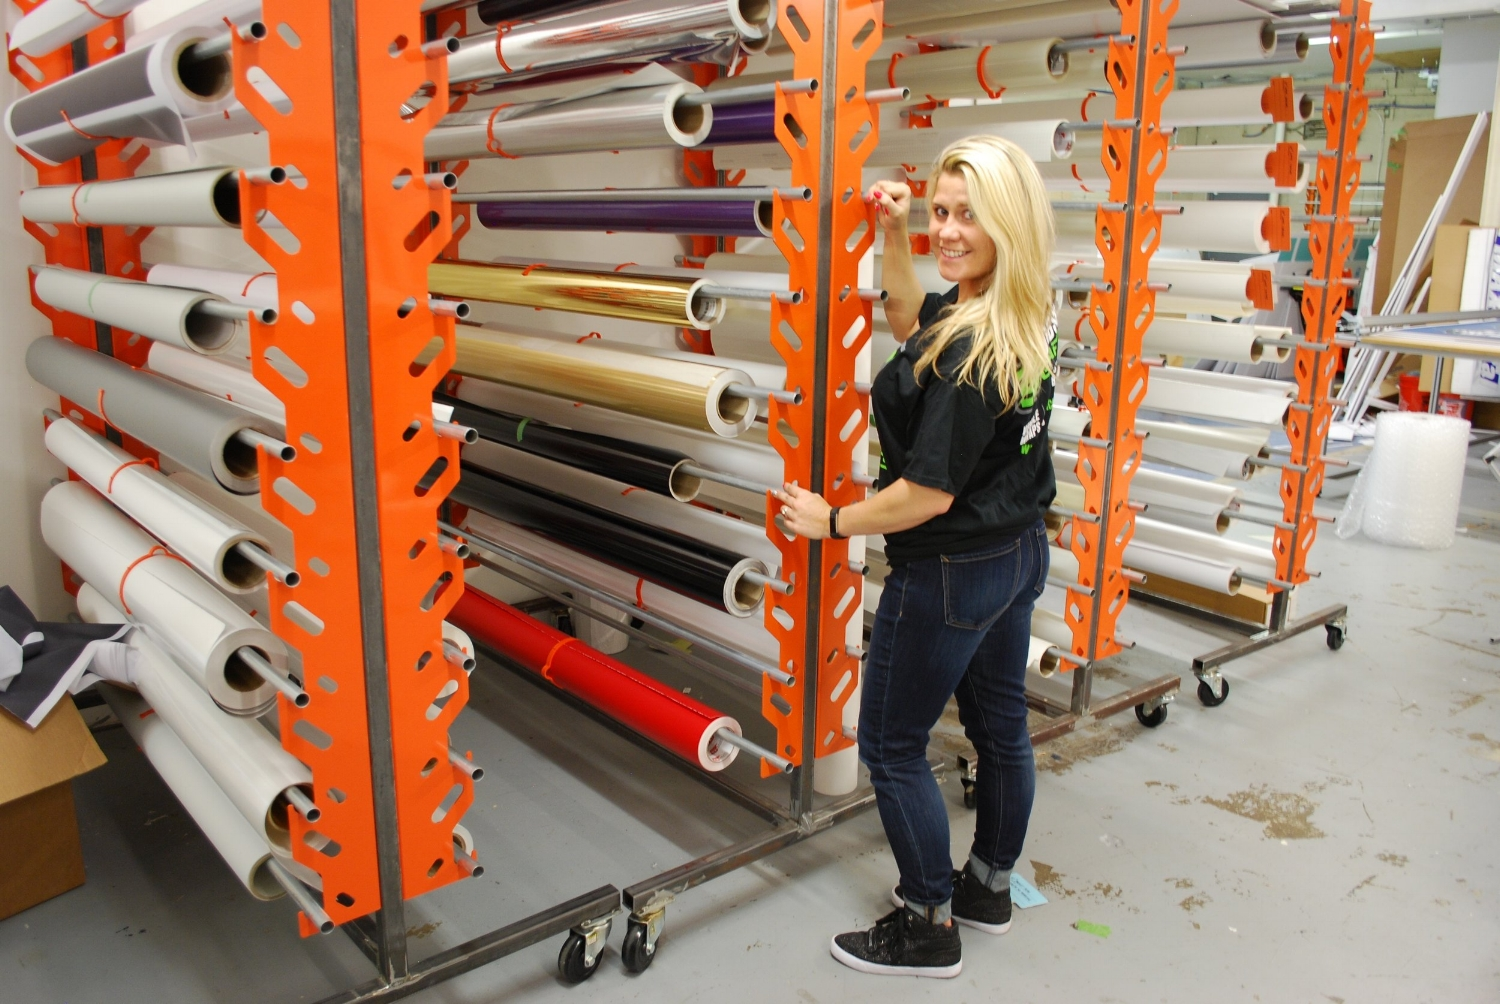 There is definitely something hot about this pic! Love the orange racks of different color vinyls;)I wish I had racks like these for my many silk fabrics at Headpiece.com, but our facility is not the size of Bombshell Graphics. I was amazed at the size of their space. My dad, who was a printer, would have loved a tour of their shop and to see how much technology has progressed since the days of adding ink to the printing press rollers.